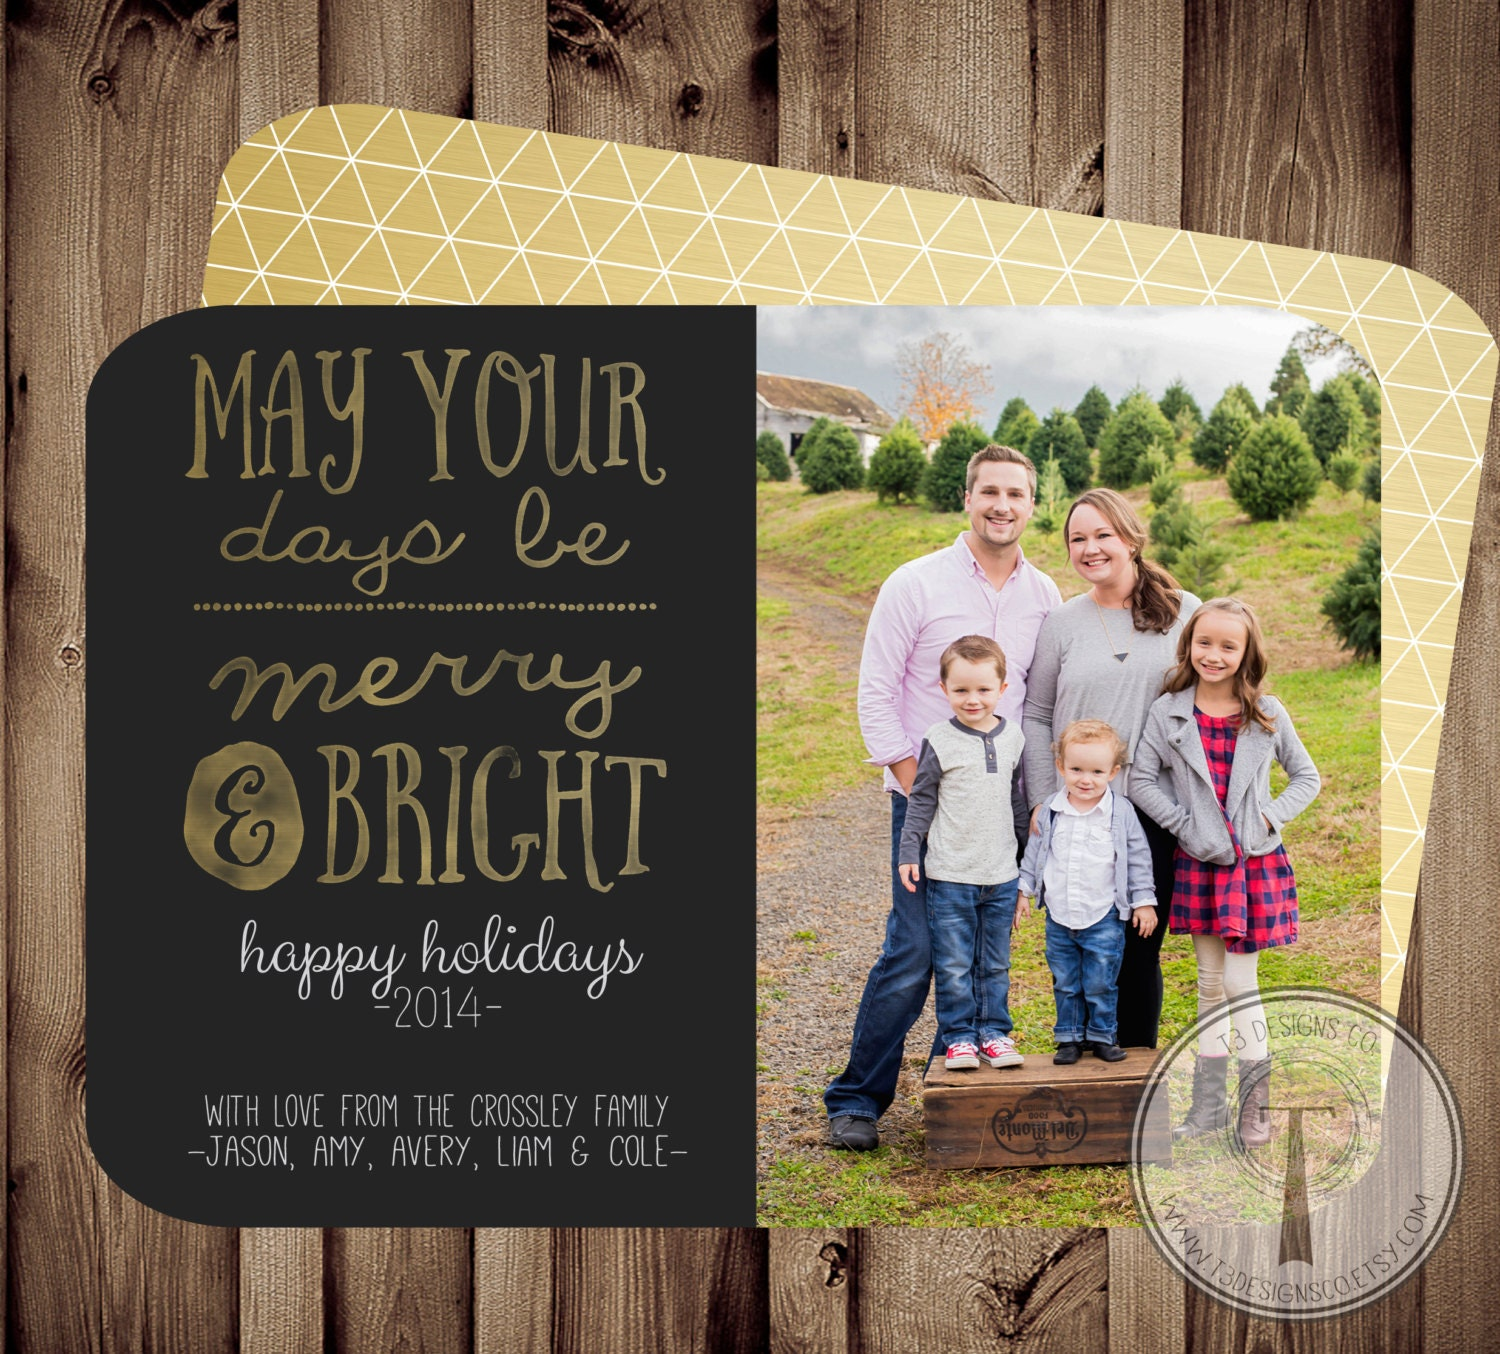 Merry and Bright Photo Christmas Card holiday card | Etsy